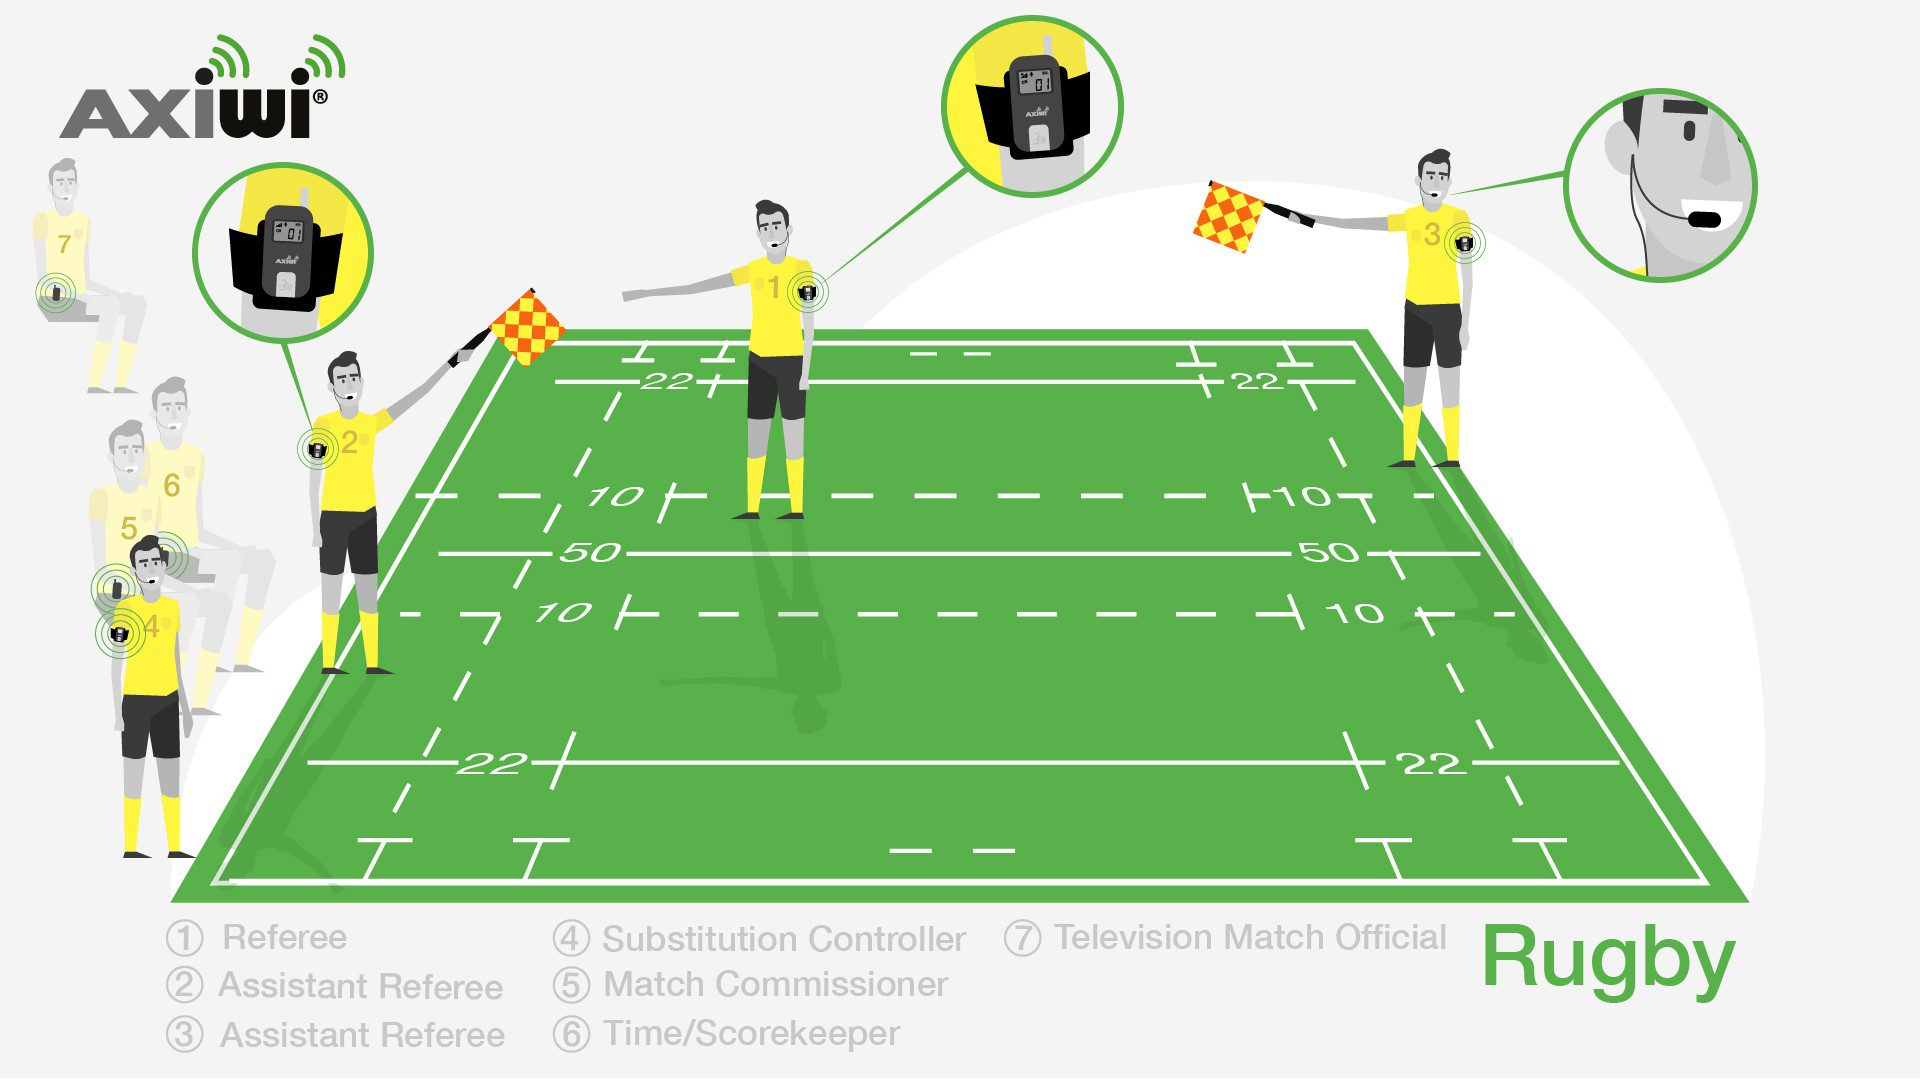 axiwi-referee-communication-headset-system-rugby